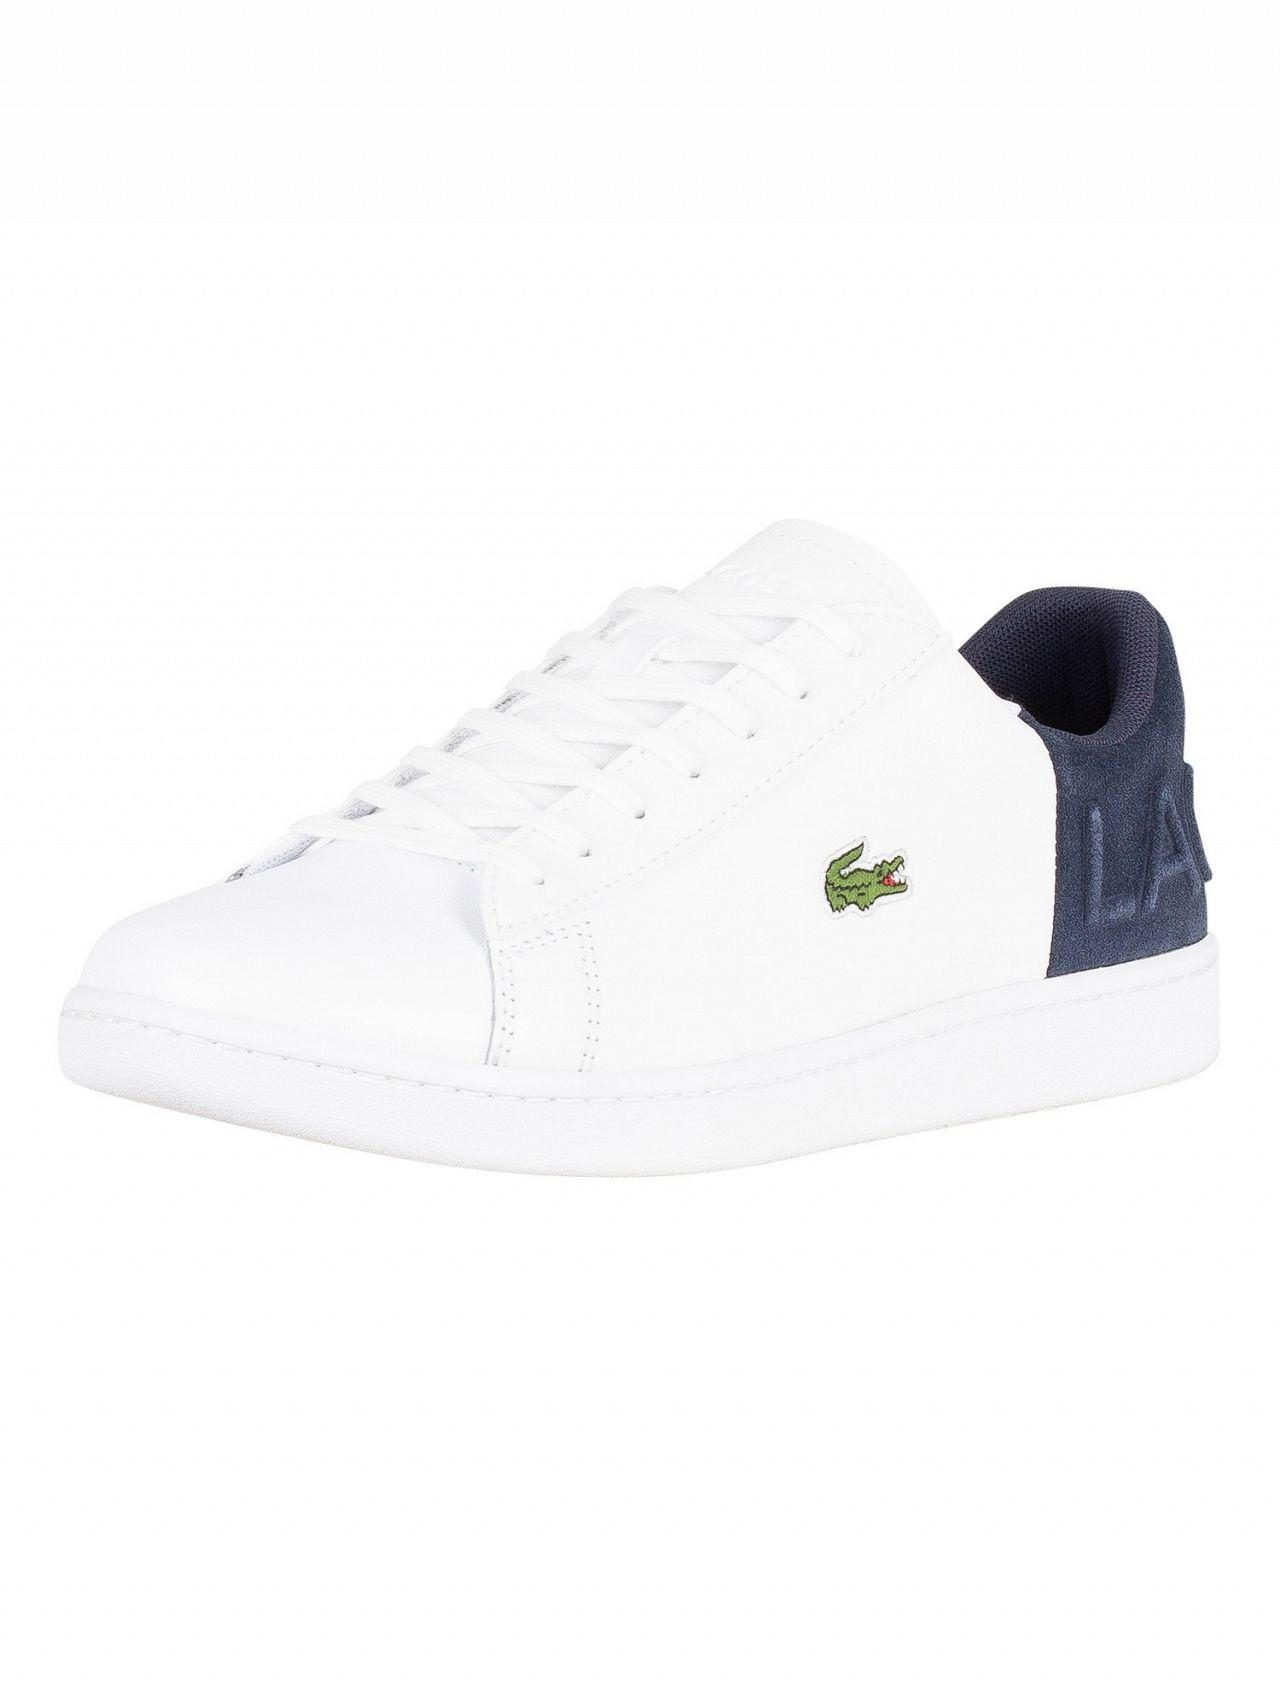 cf1319ff9 Lacoste White navy Carnaby Evo 318 2 Qsp Spm Leather Trainers in ...